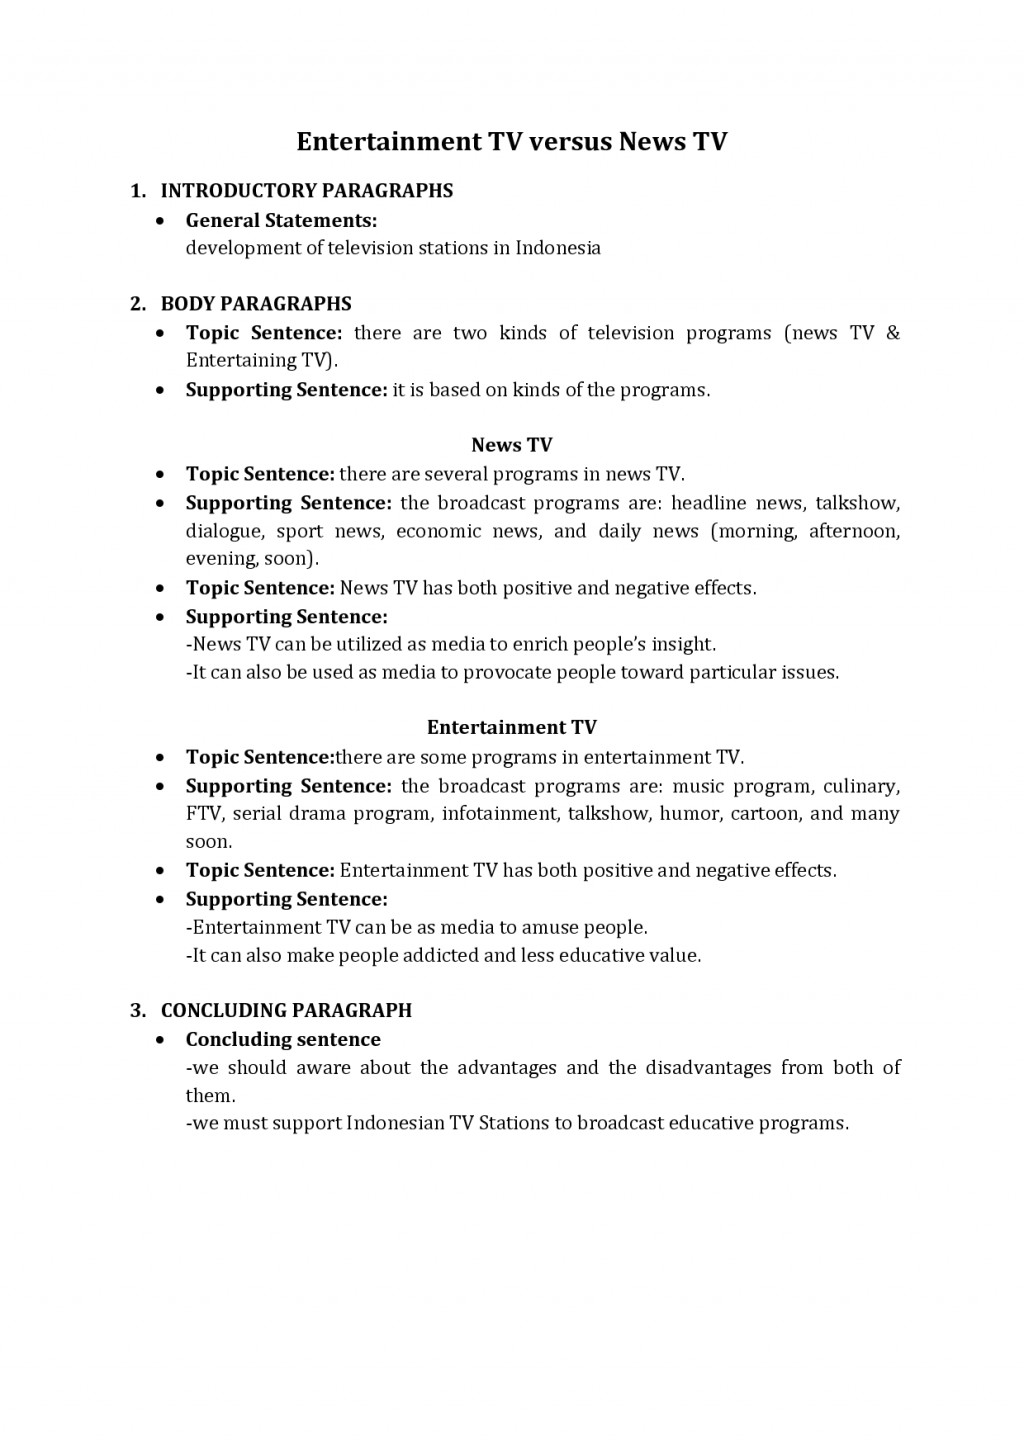 005 Fbunmxinib How To Write An Essay Outline Excellent Pdf For University Large